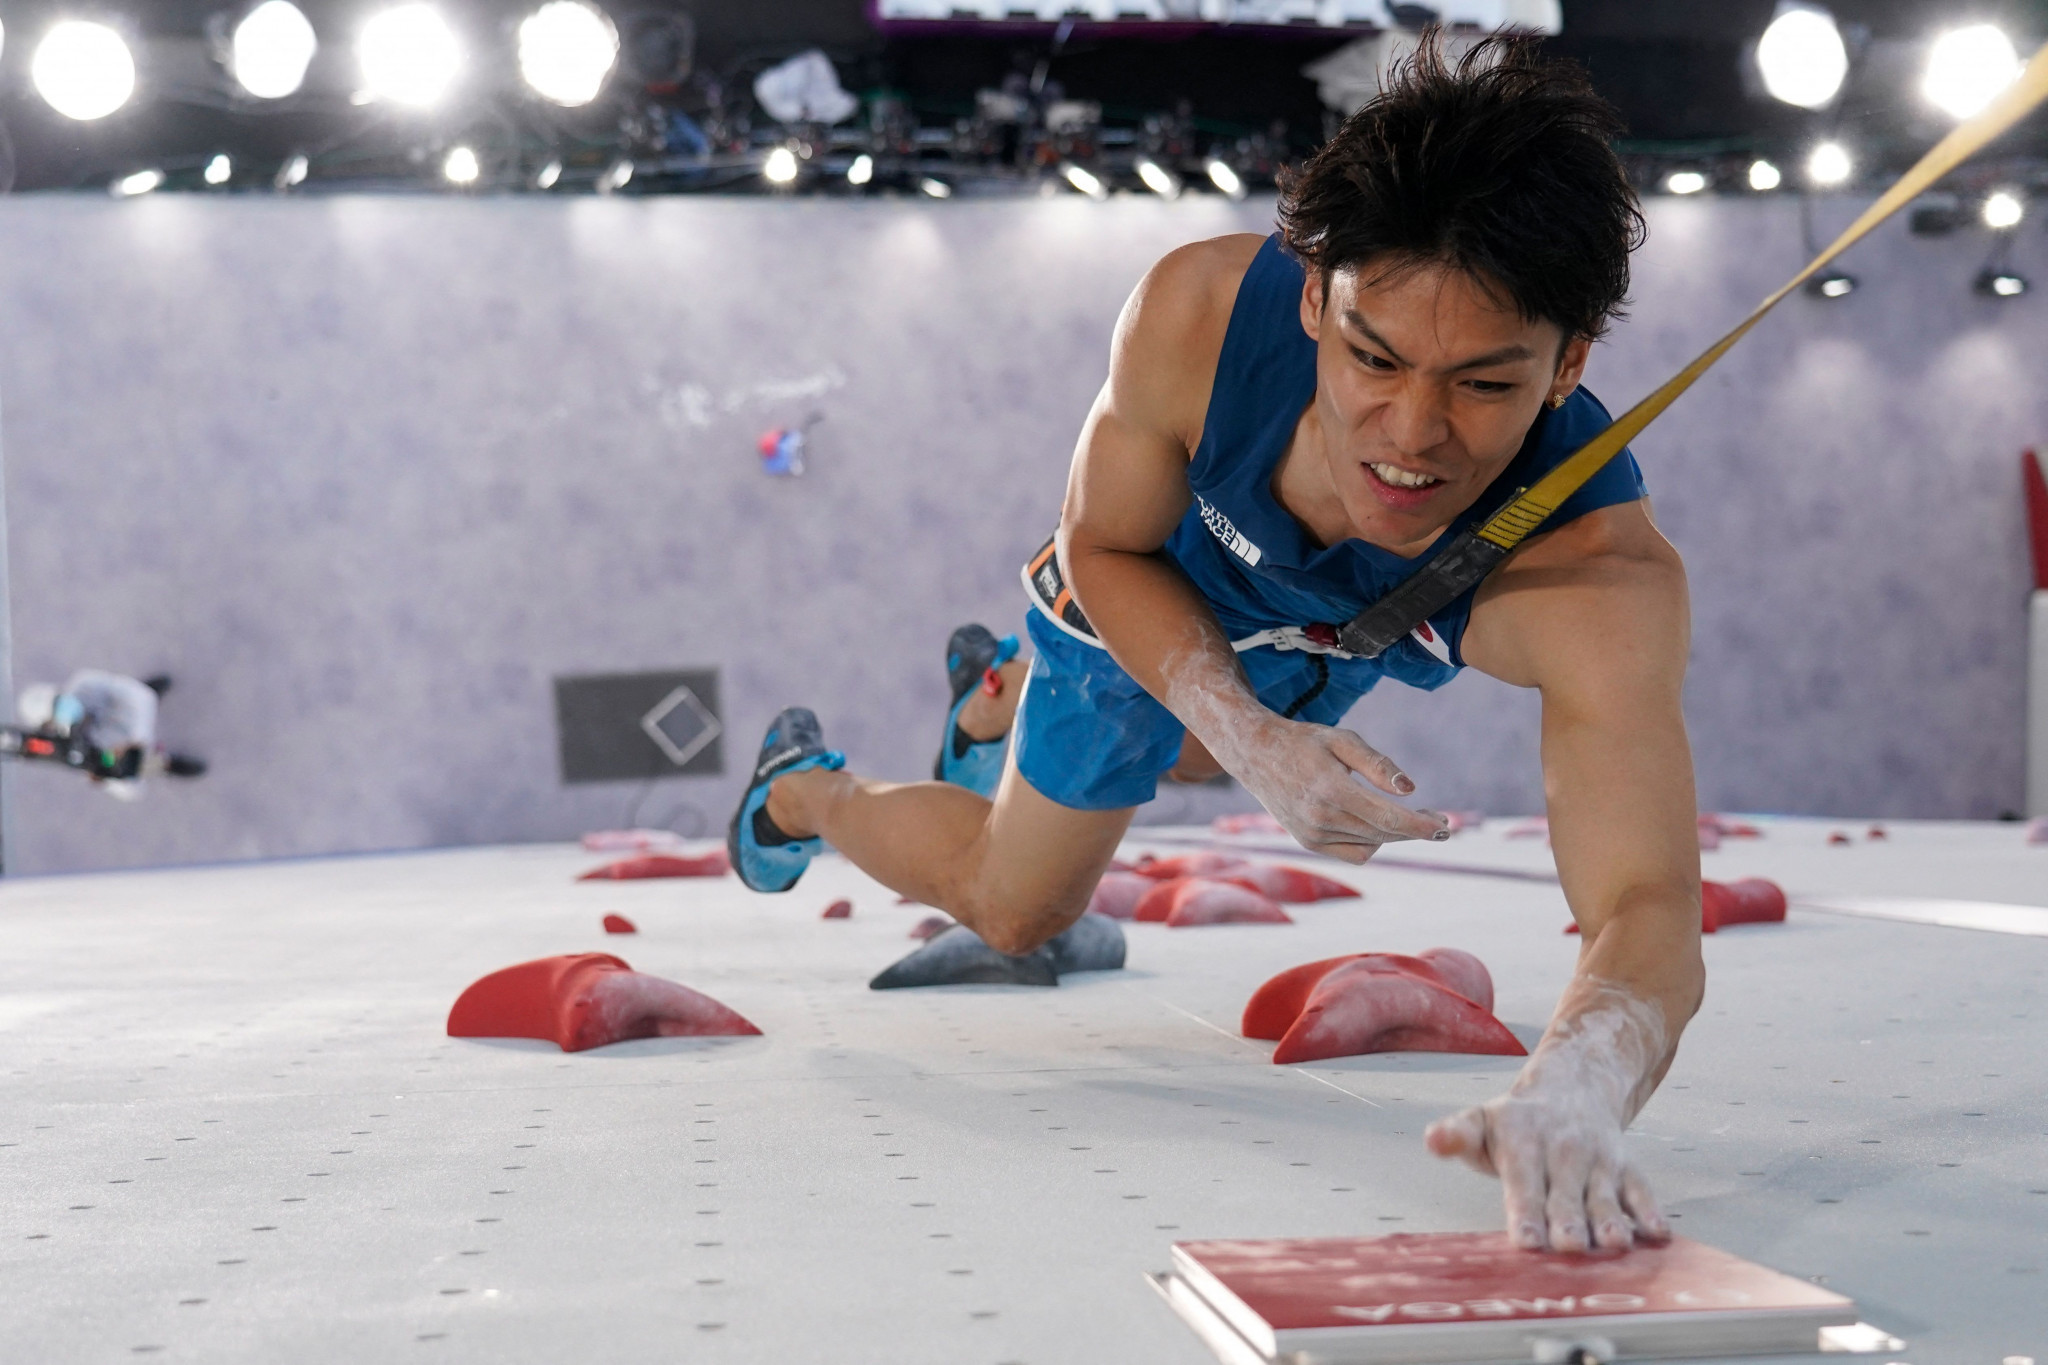 IFSC Speed World Cup in Jakarta cancelled due to COVID-19